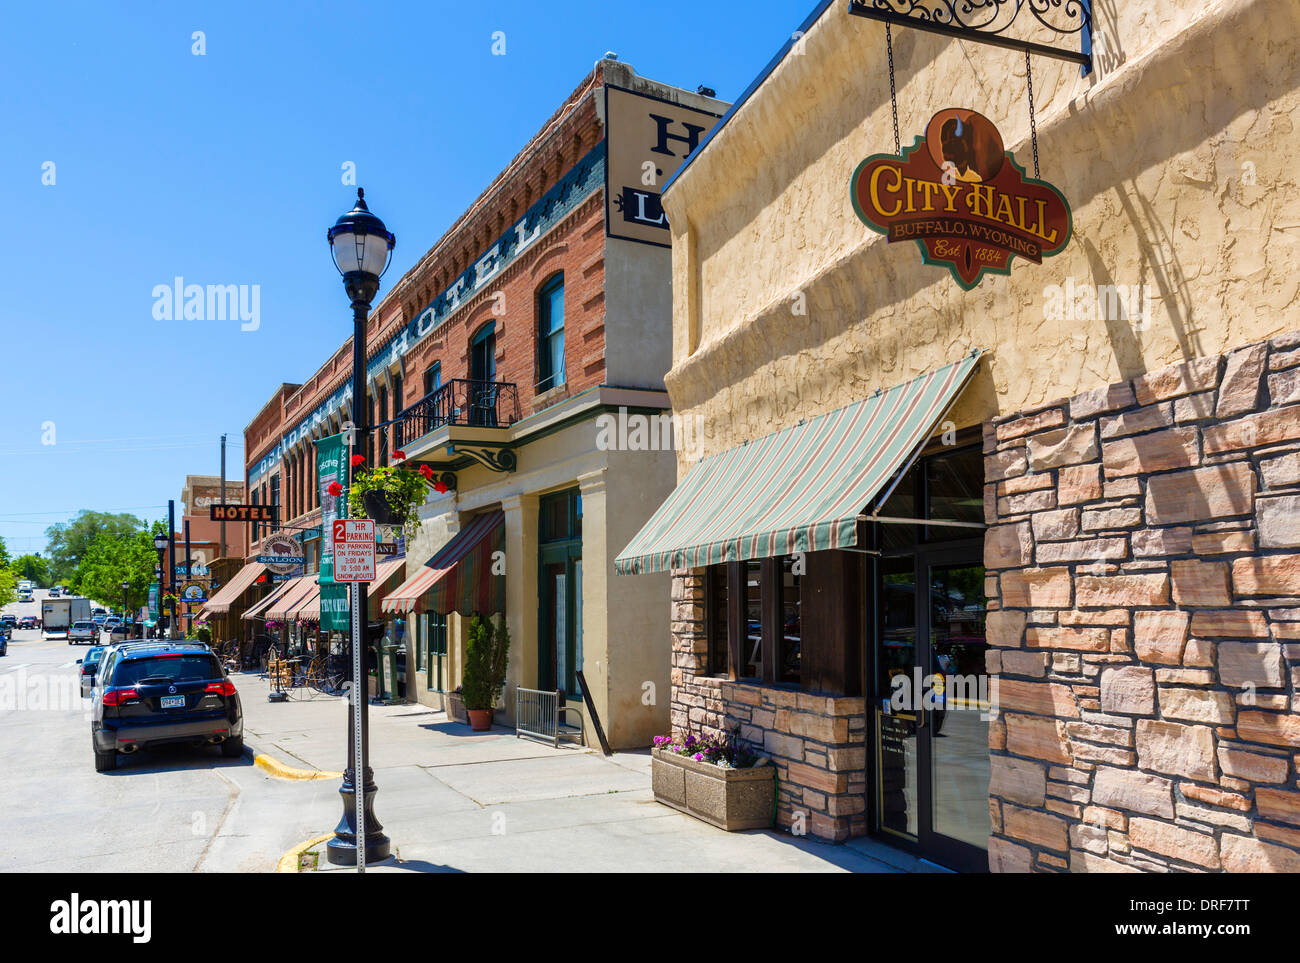 City Hall and Occidental Hotel on Main Street in historic downtown Buffalo, Wyoming, USA - Stock Image